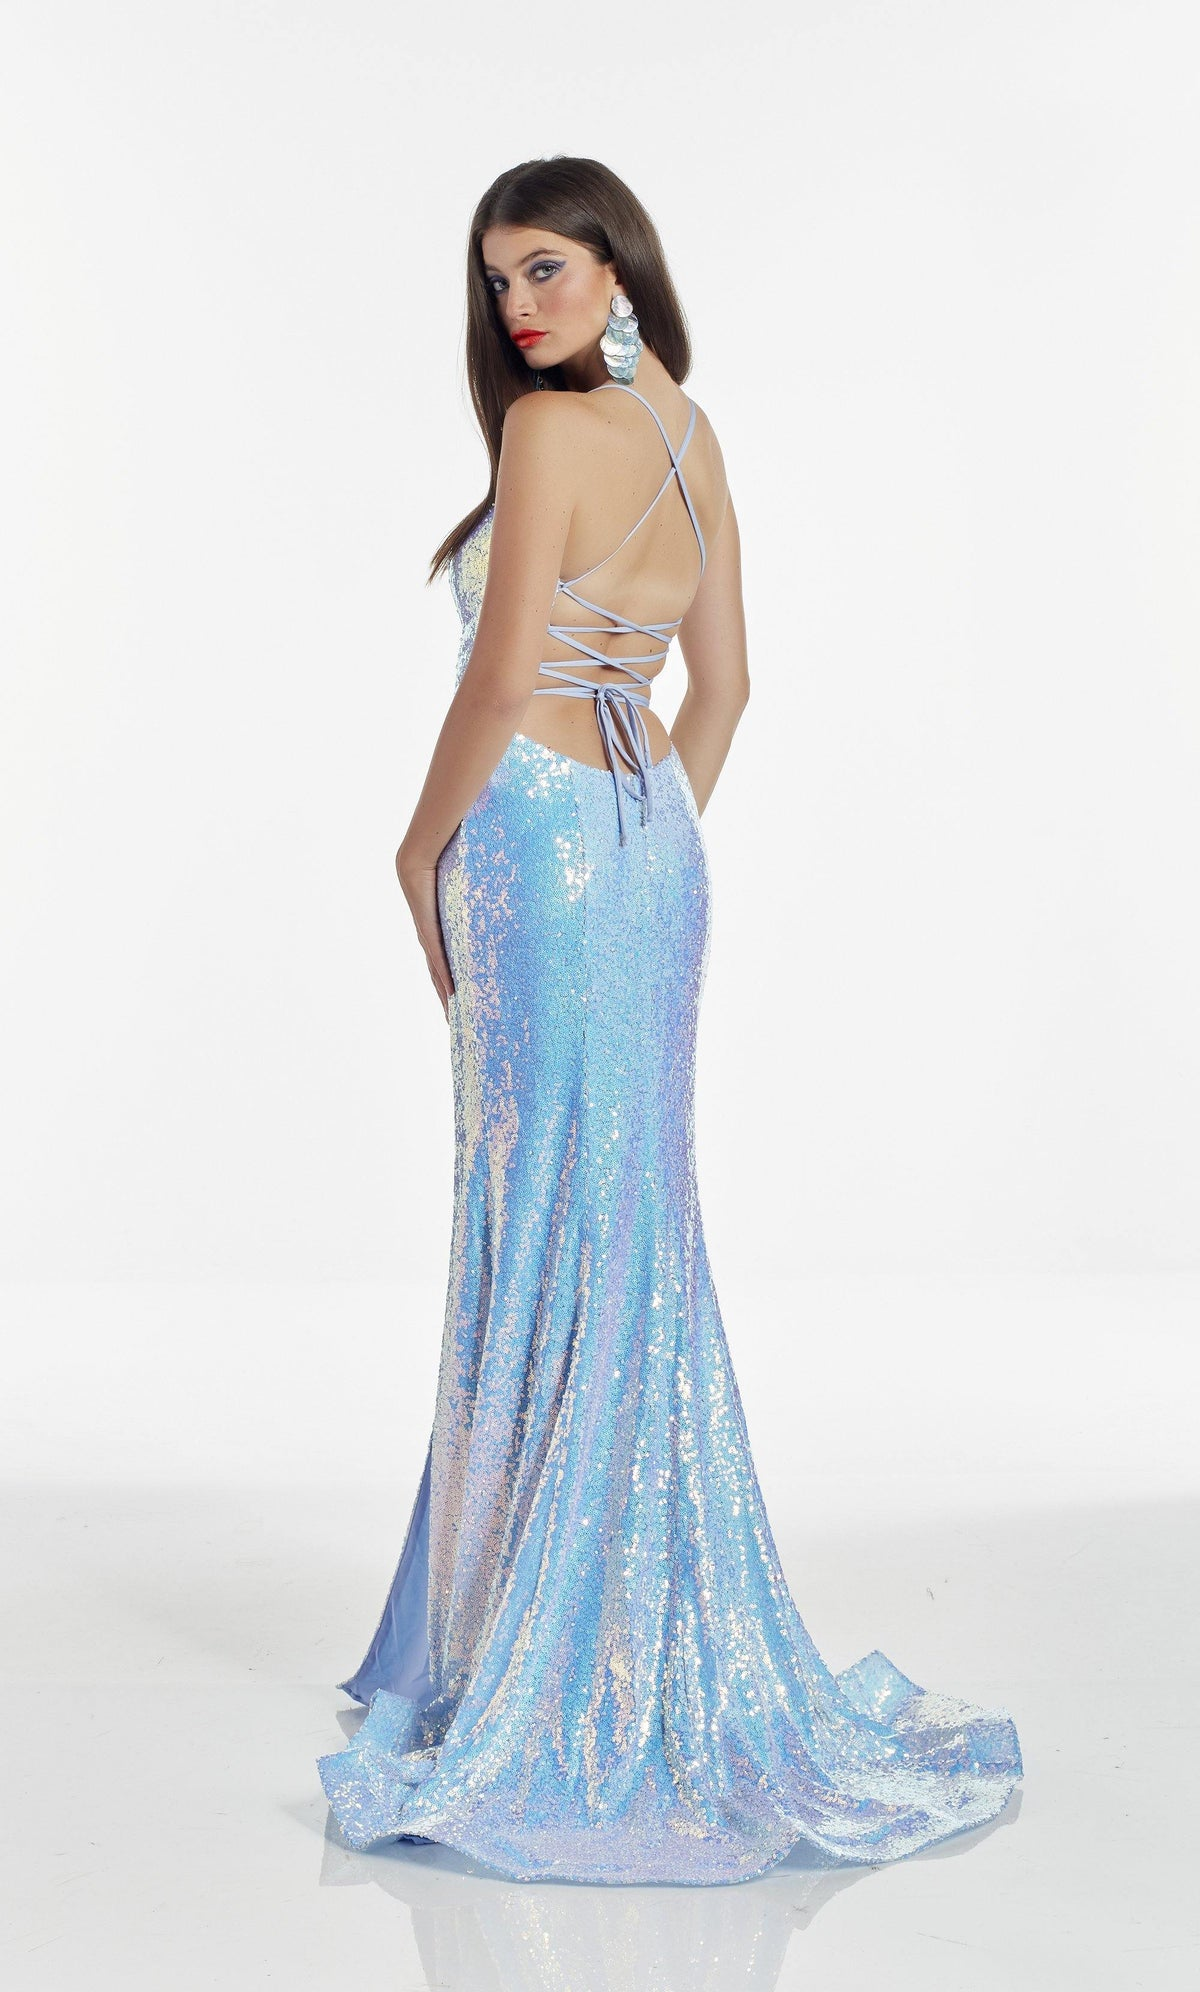 Iridescent Blue Opal sequin prom dress with a strappy back and train